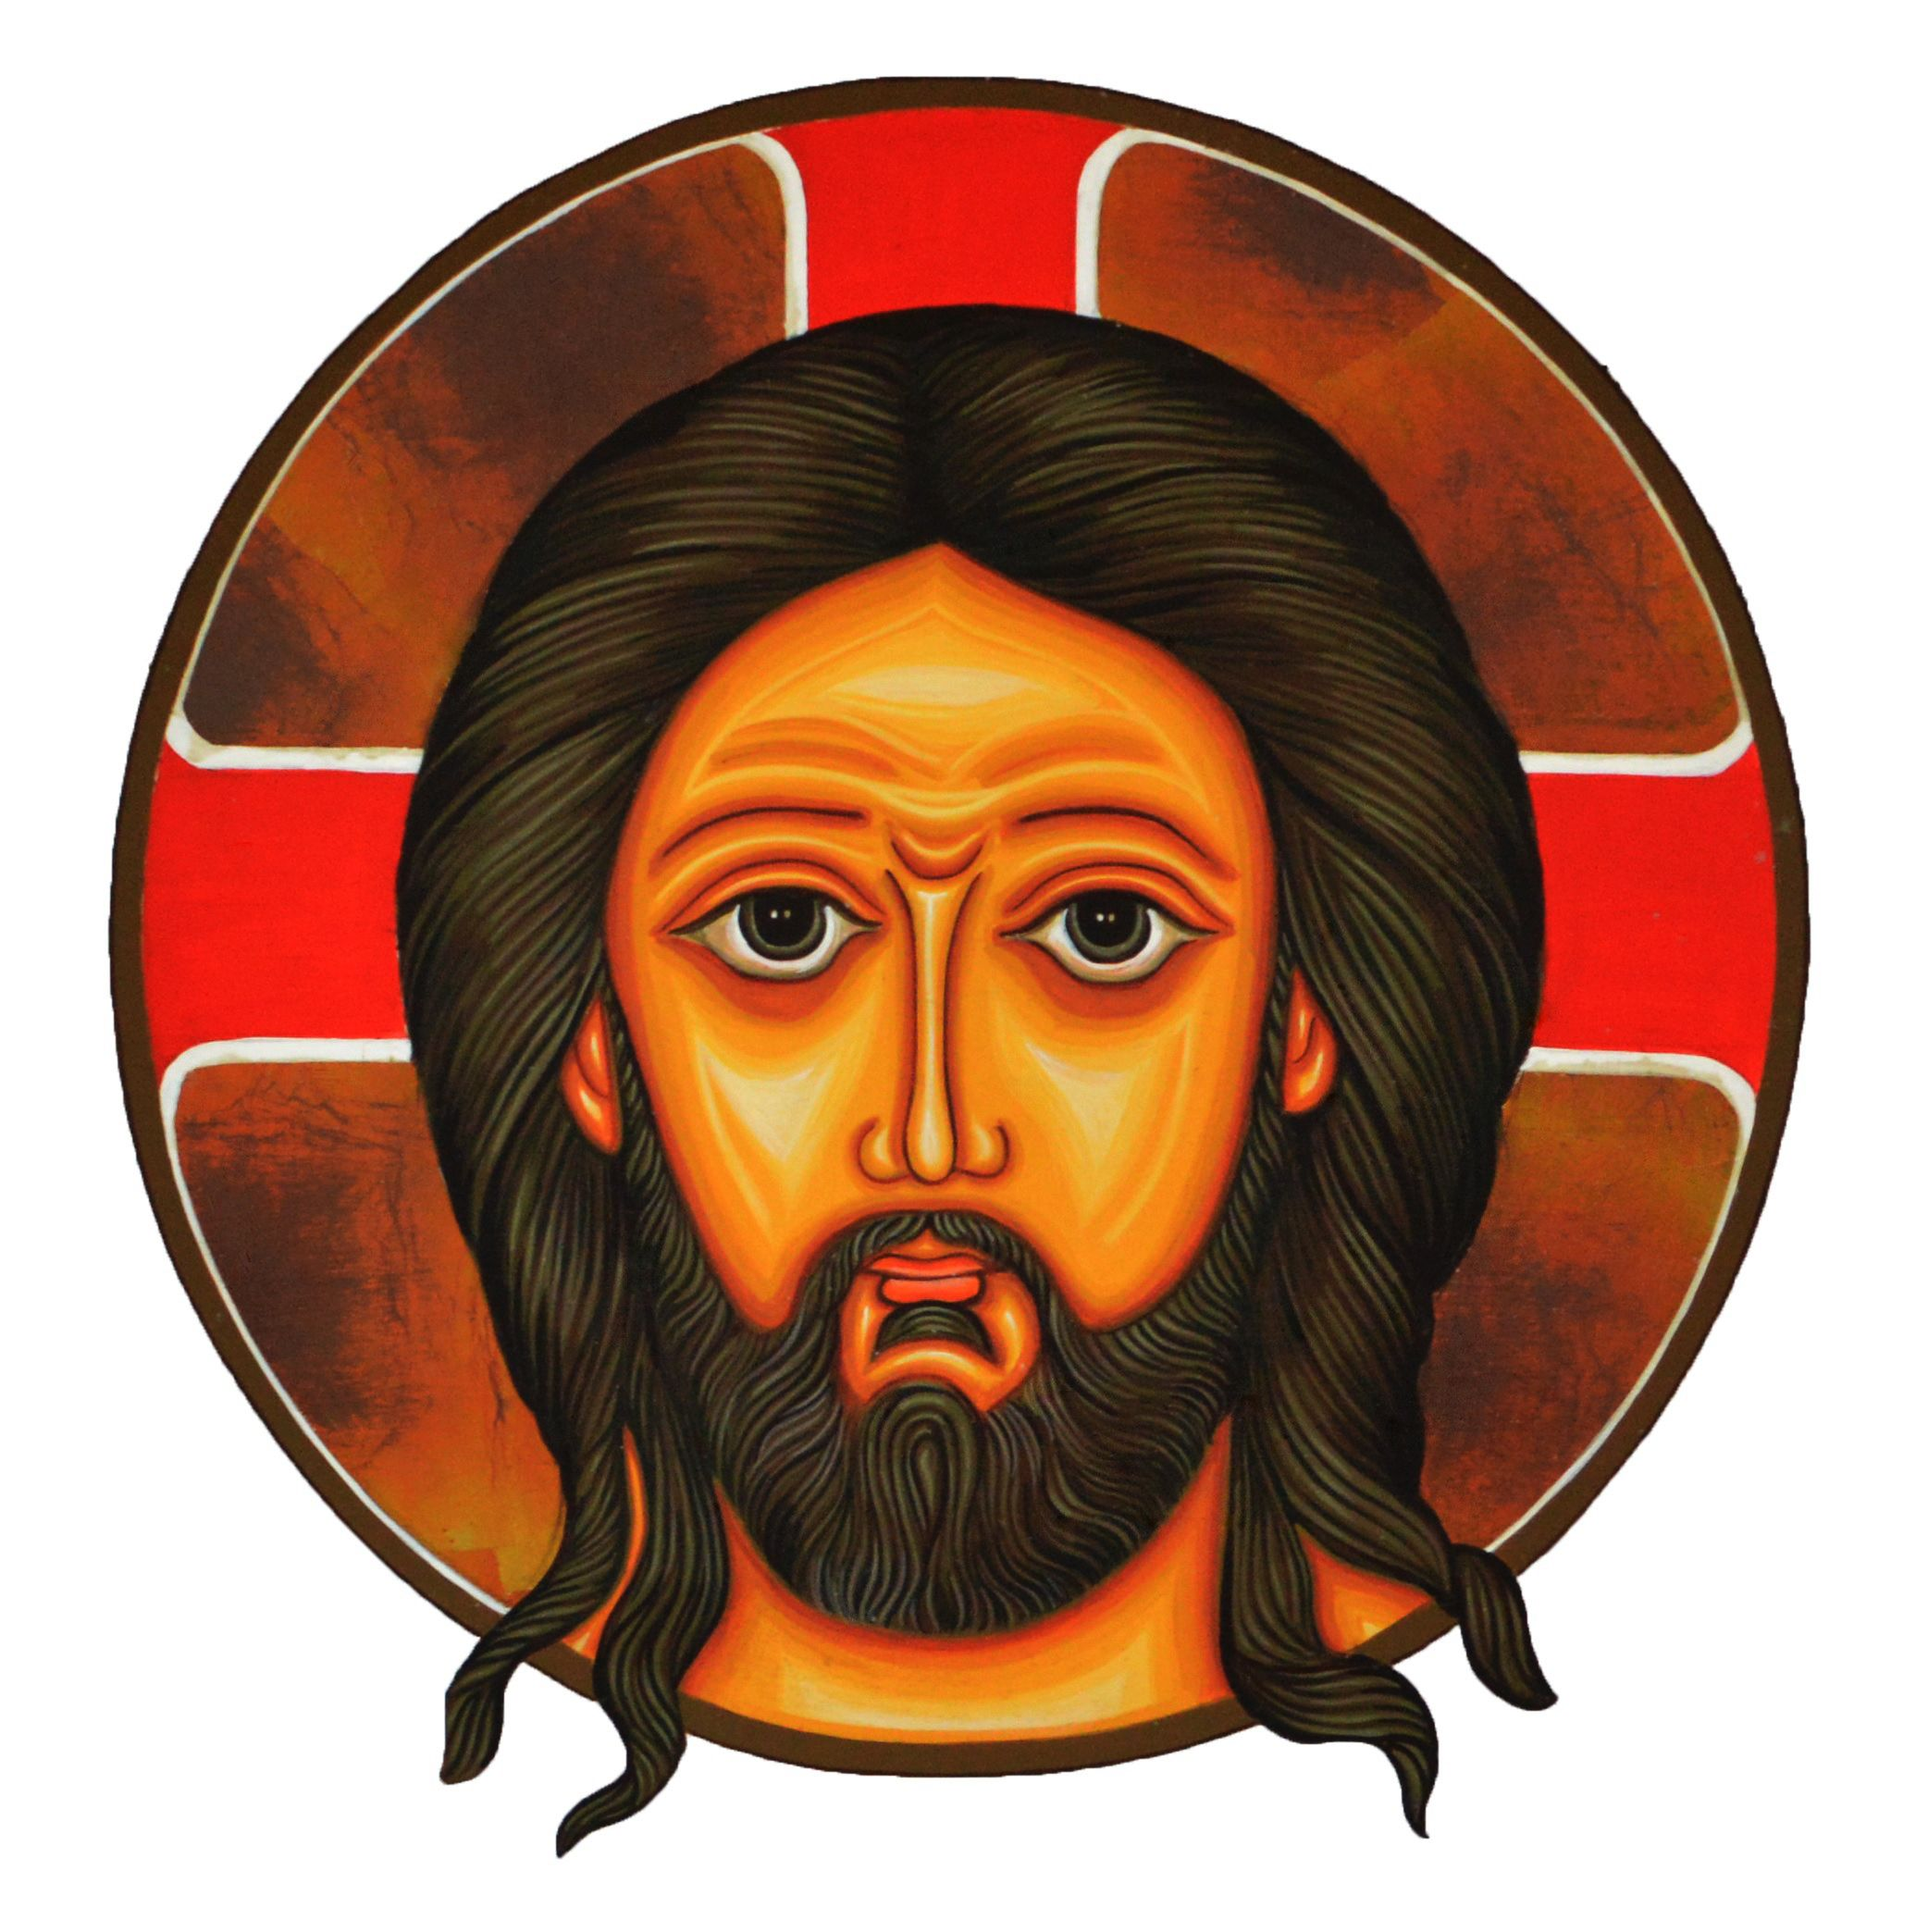 The Holy Face of Our Lord, painting on the Altar of St. Thomas Apostolic Seminary, Kottayam